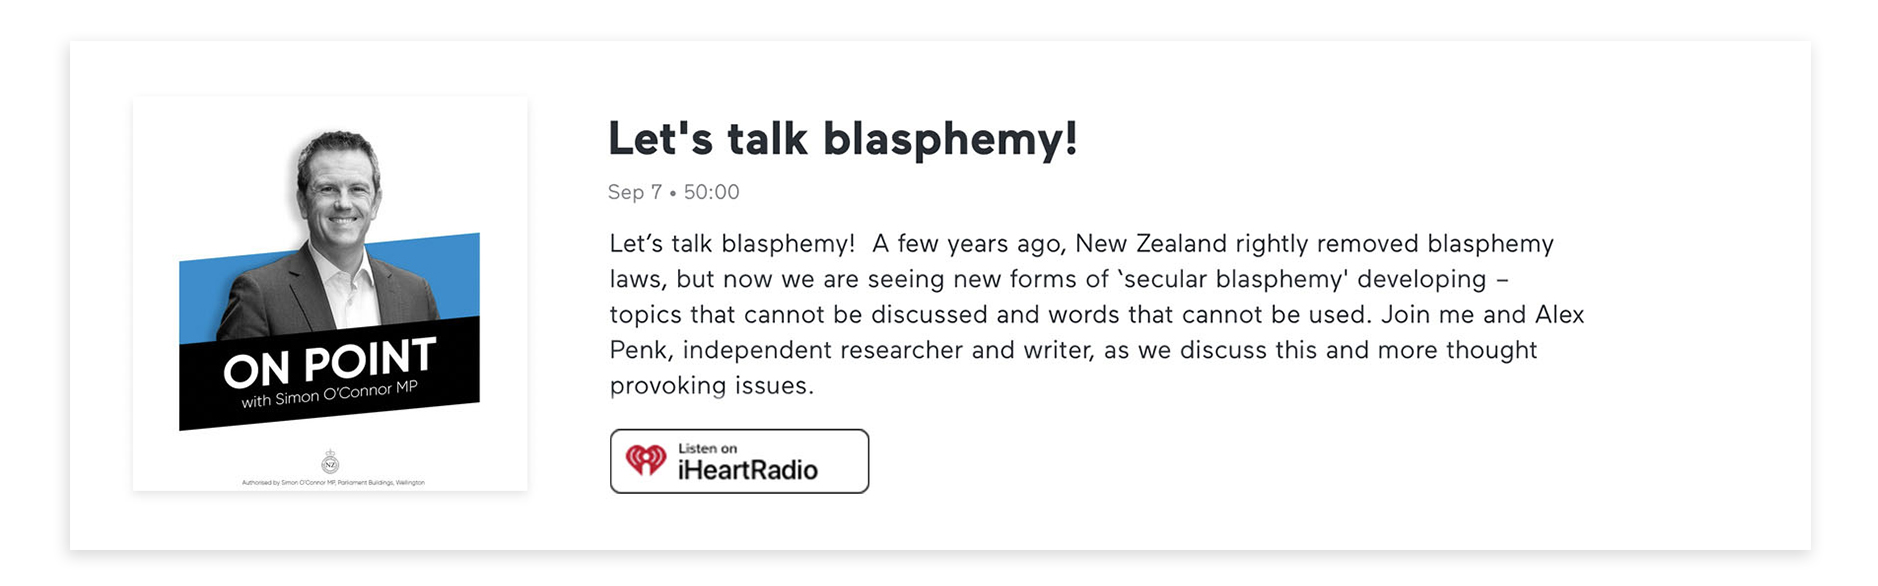 Episode 20 On Point with Alex Penk on Blasphemy